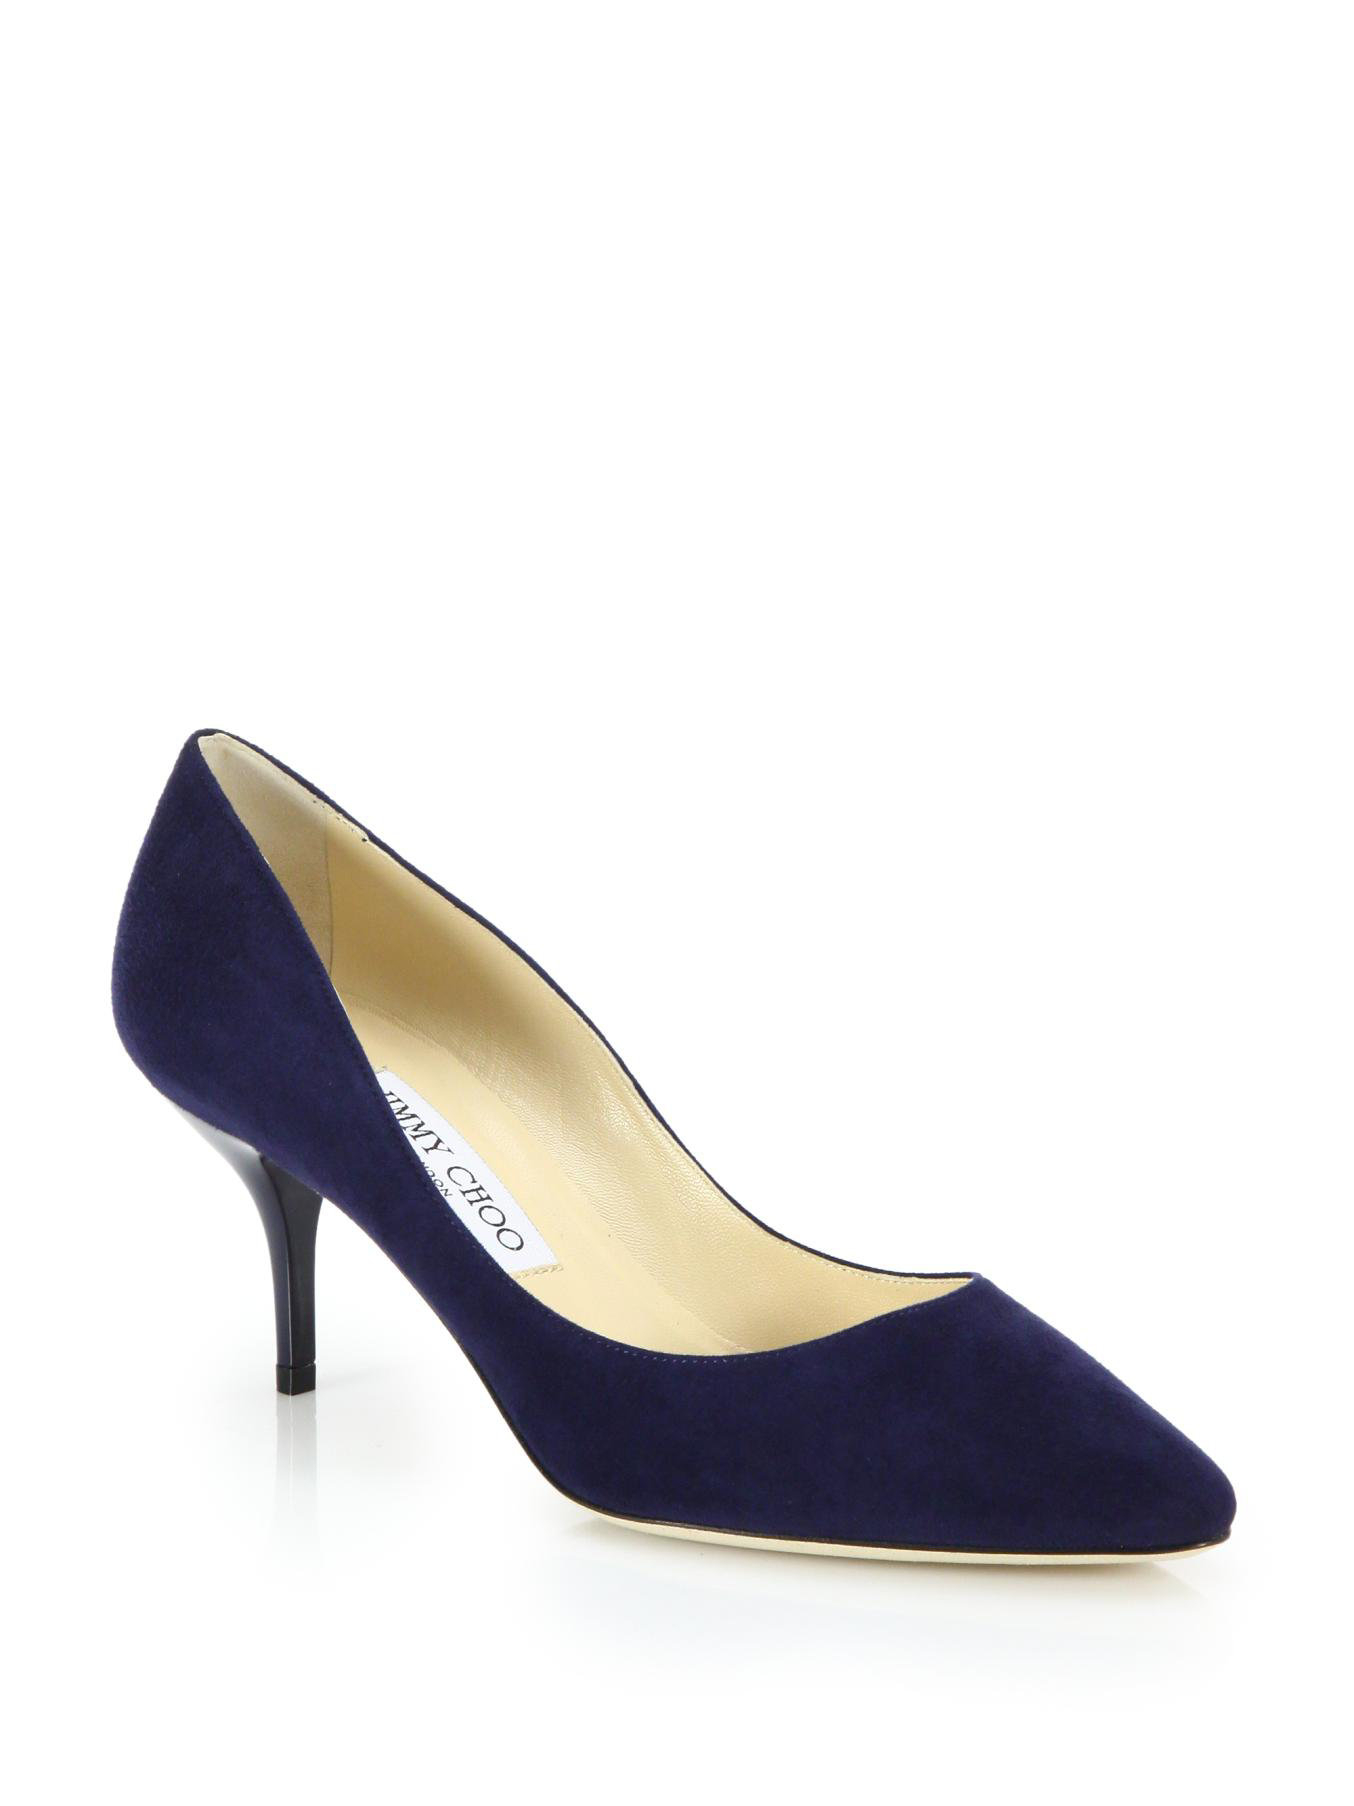 Jimmy Choo Navy Blue Shoes